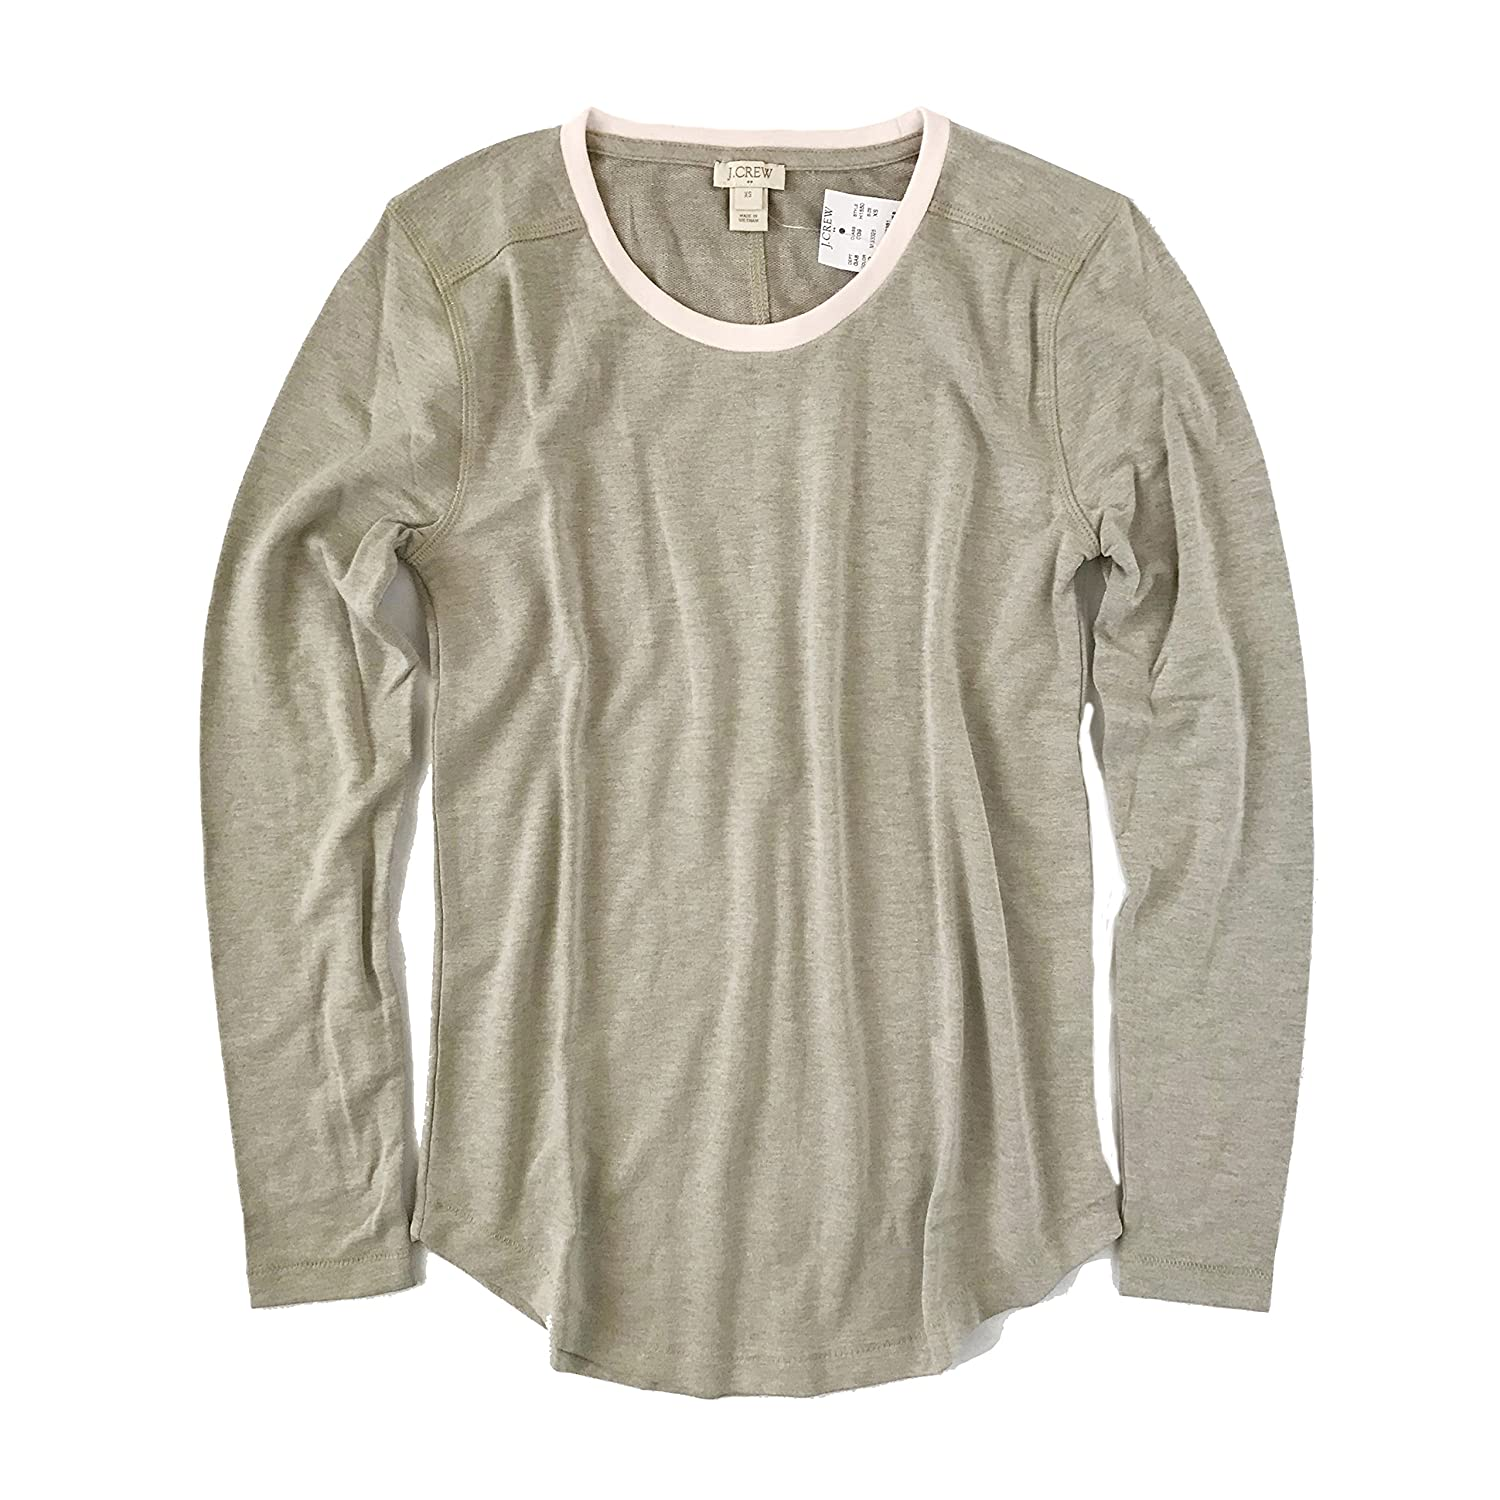 9e9f42d1 J Crew Factory - Women's Supercomfy Sweatshirt Tee at Amazon Women's  Clothing store: